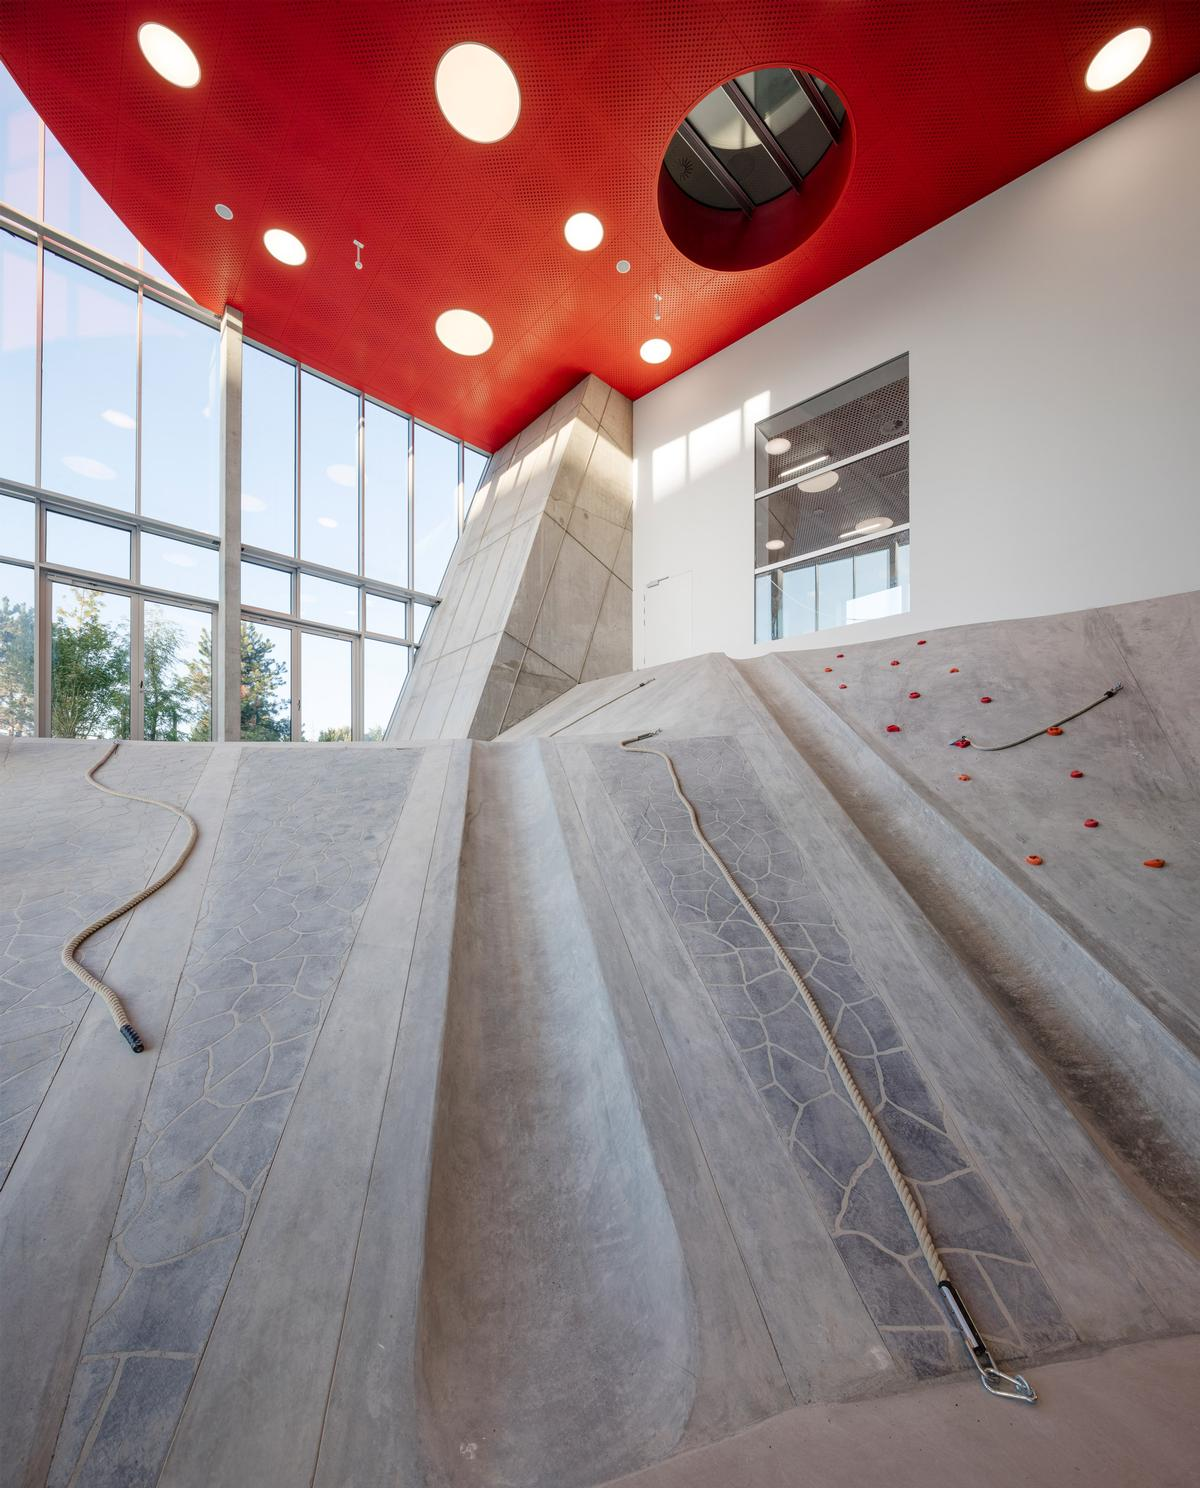 The facility is open to people of all ages and abilities / Adam Mørk